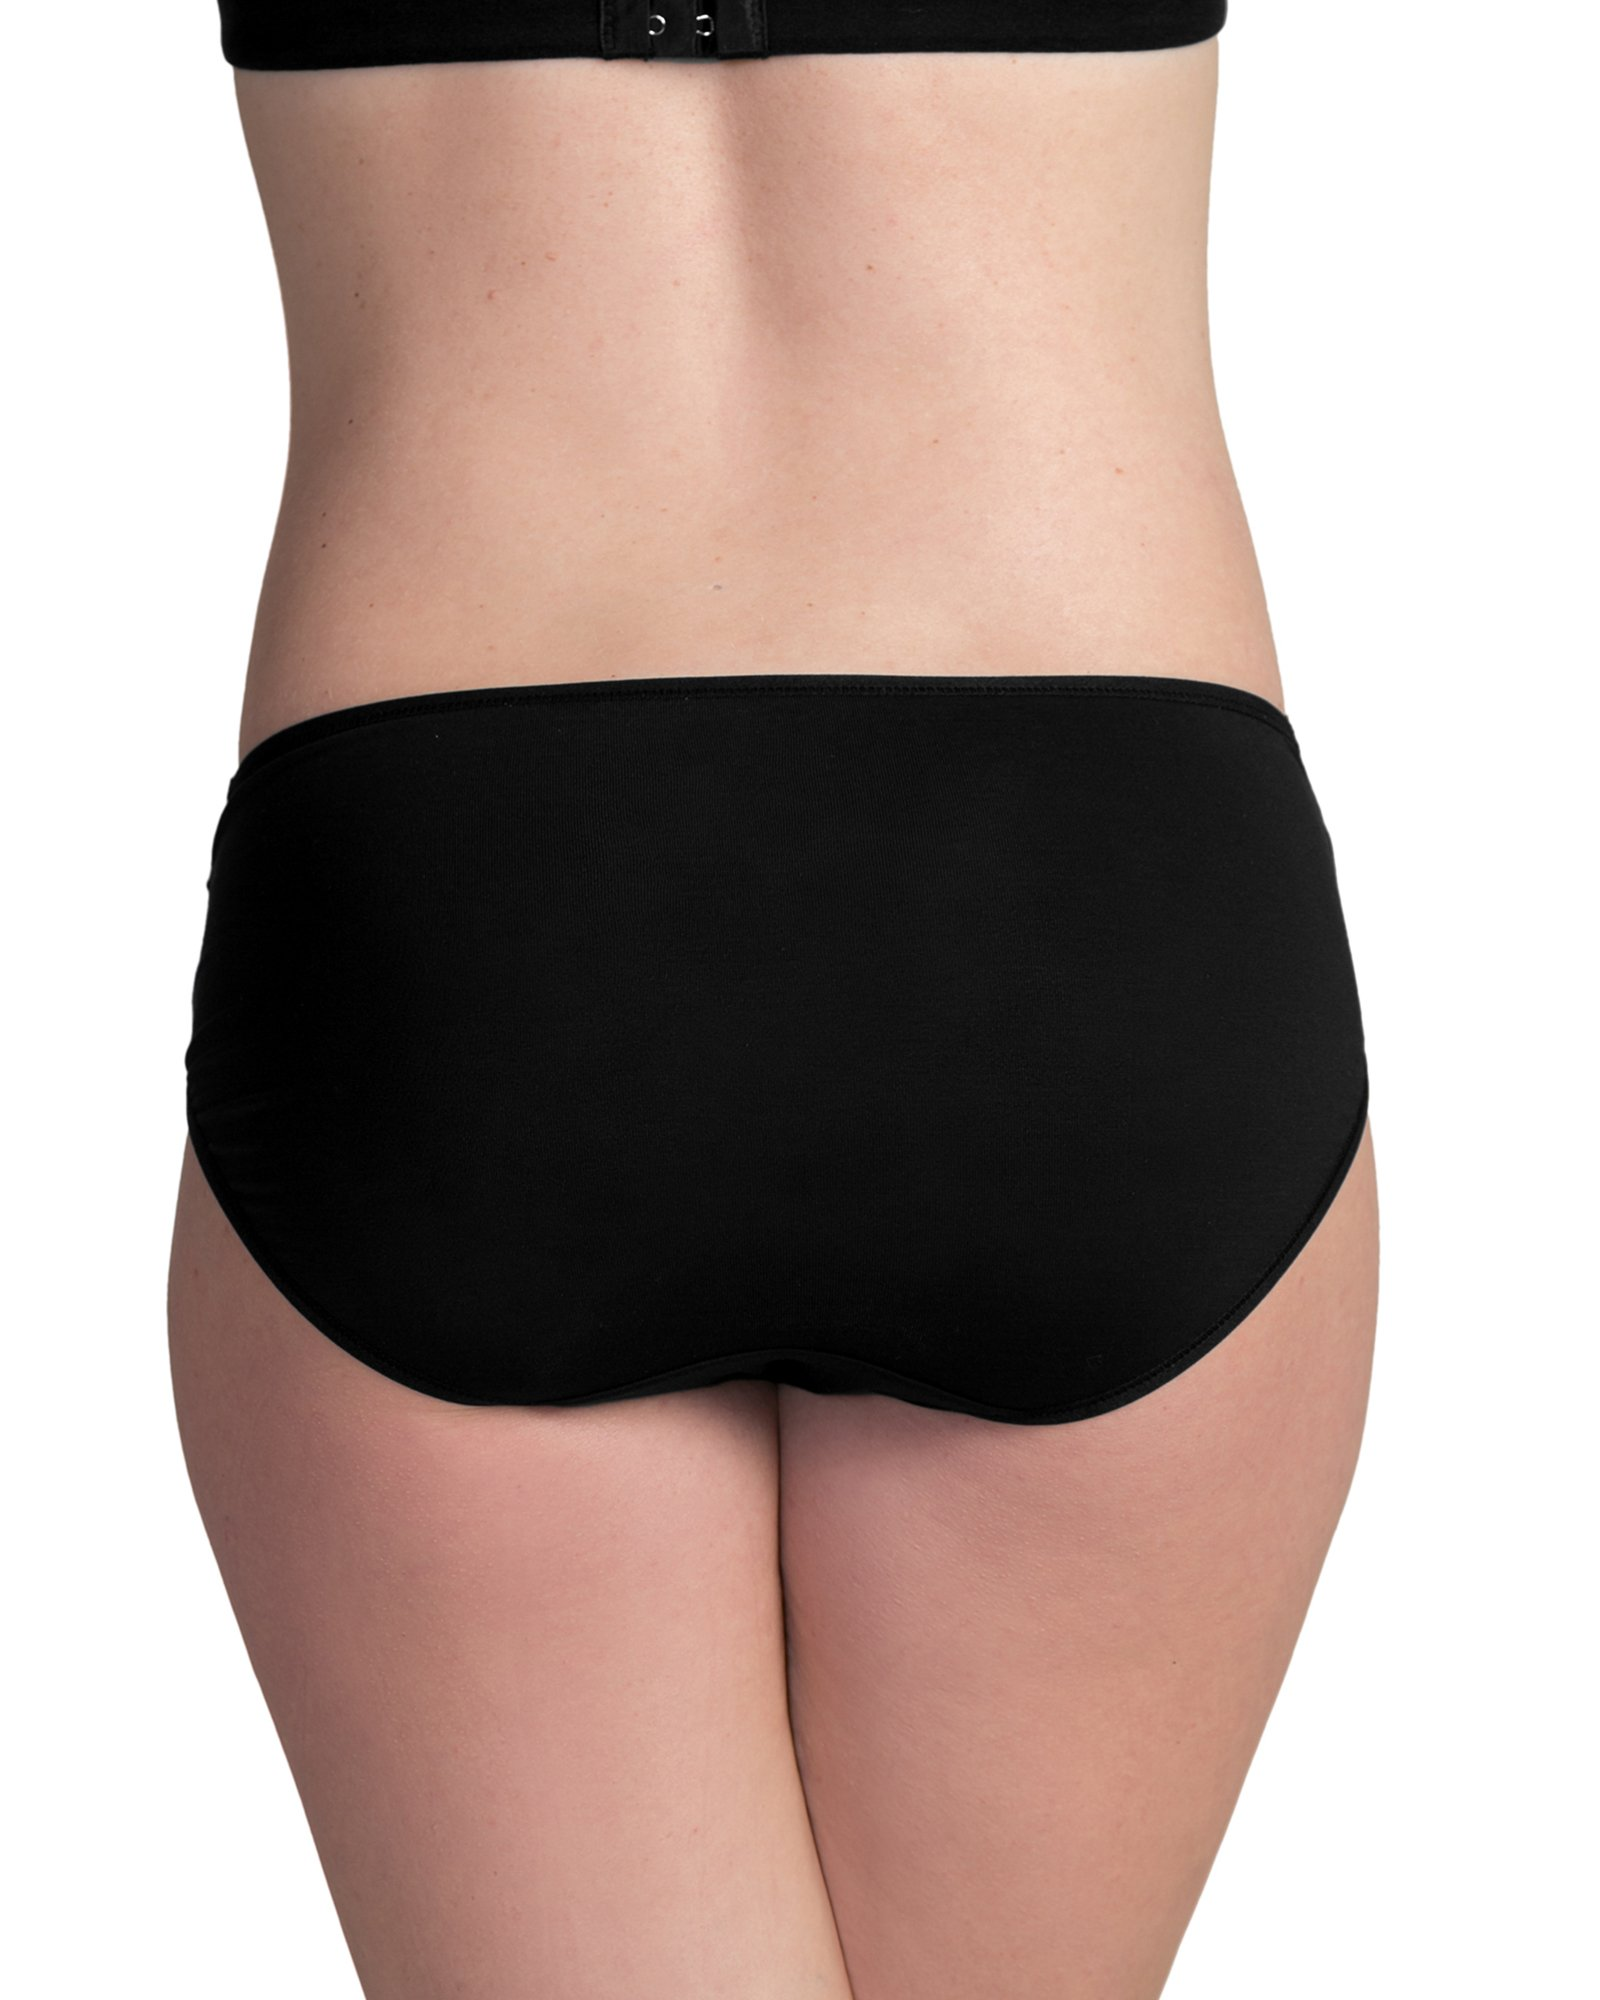 Kindred Bravely Under The Bump Seamless Maternity Underwear/Pregnancy Panties - Bikini (Large Assorted, 5 Pack) by Kindred Bravely (Image #4)